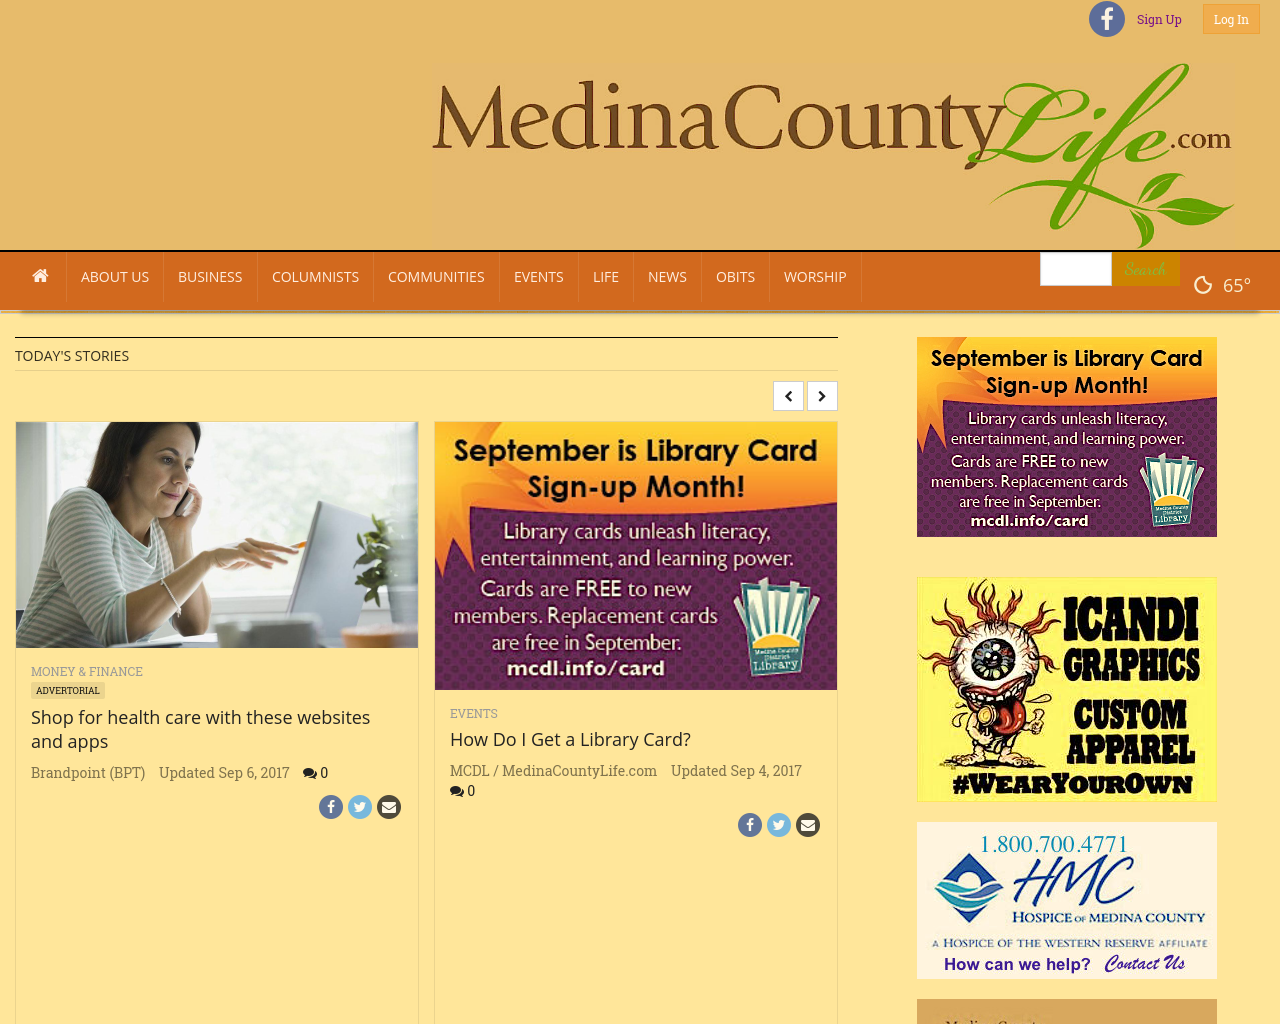 Medina-County-Life-Advertising-Reviews-Pricing